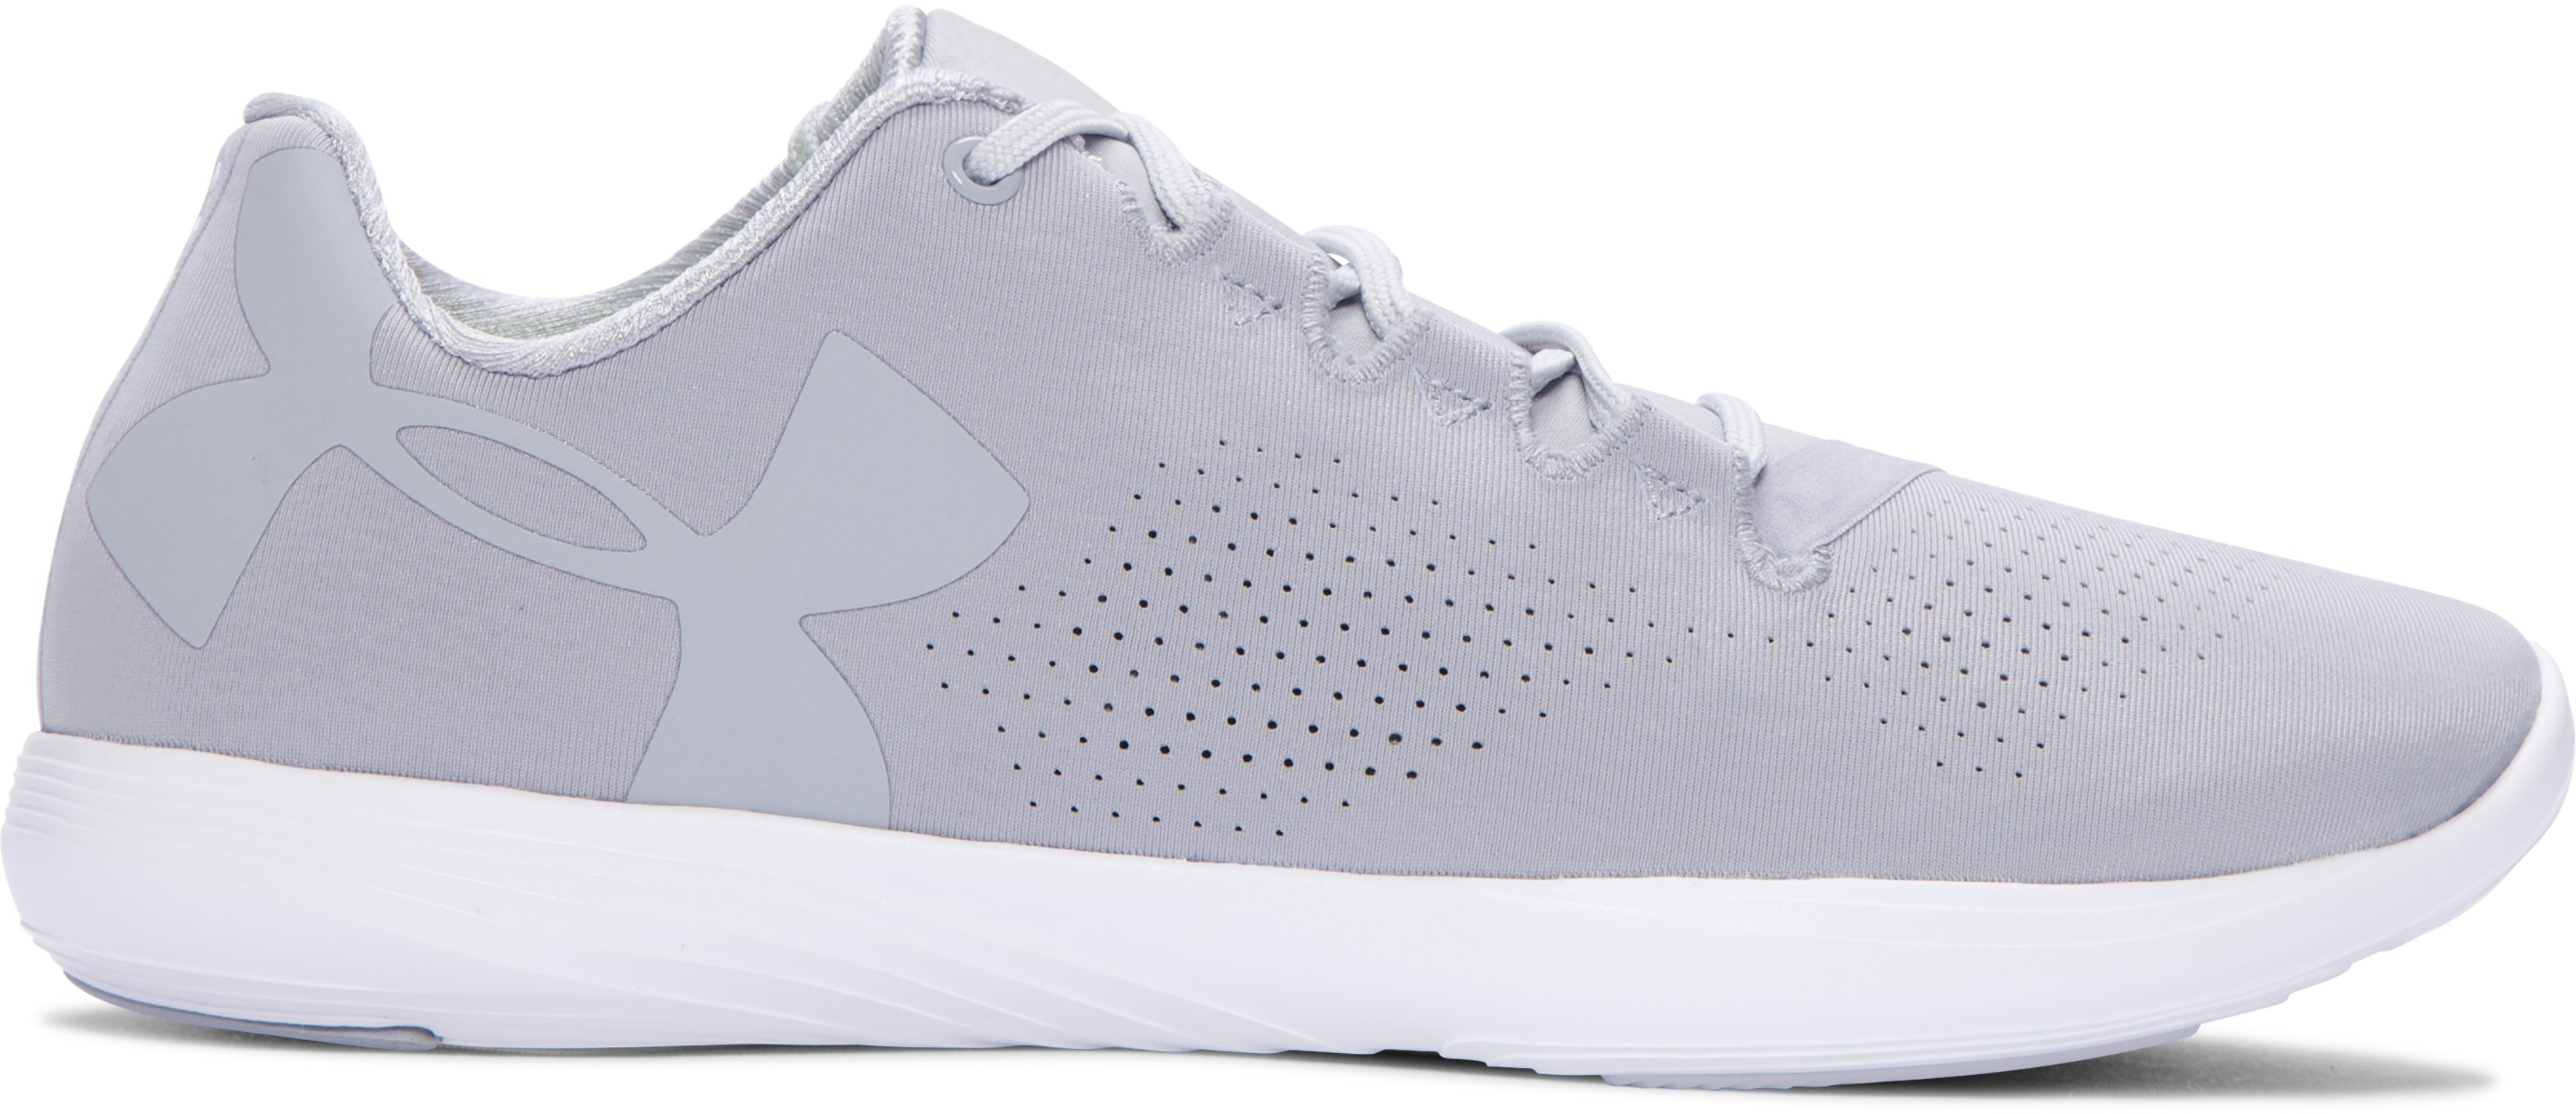 Women's UA Street Precision Low Training Shoes, OVERCAST GRAY, undefined